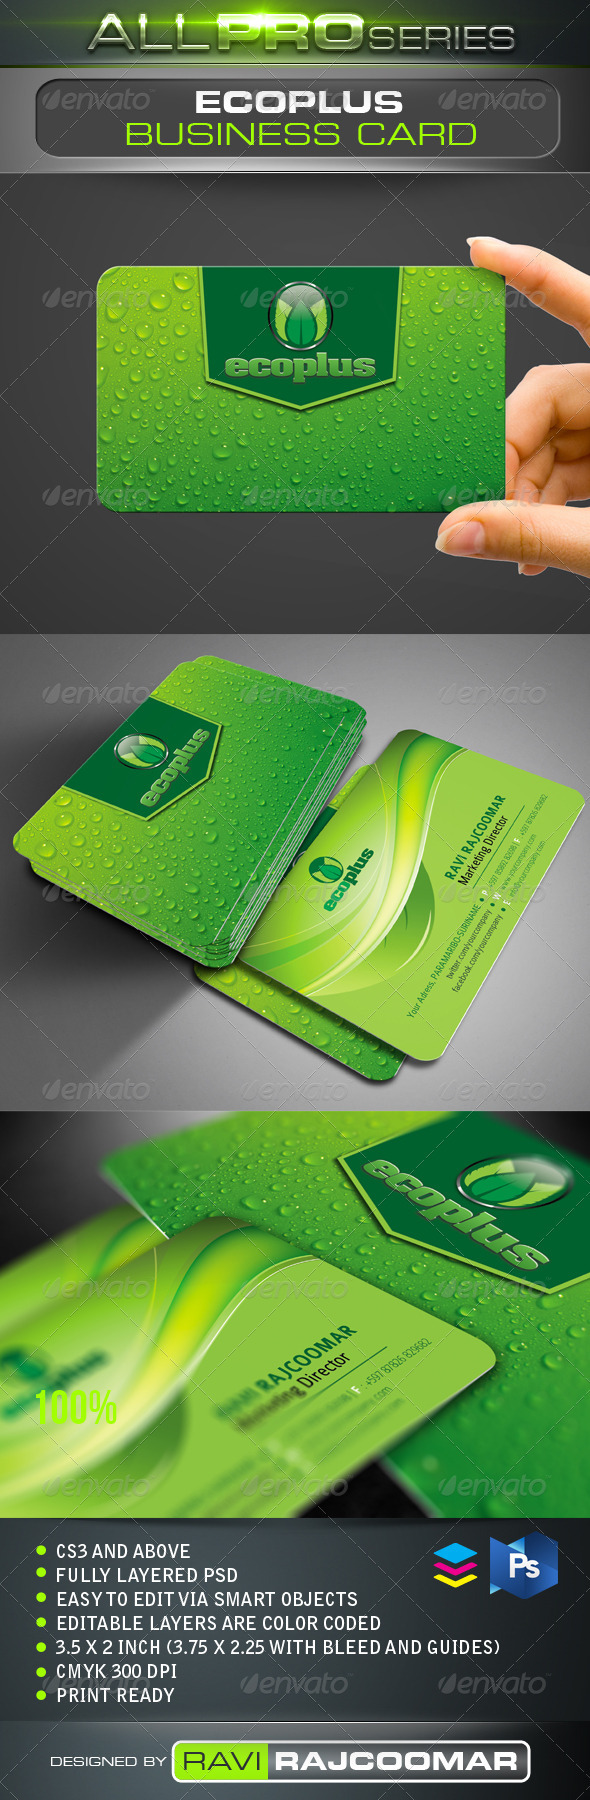 Ecoplus Business Card - Corporate Business Cards